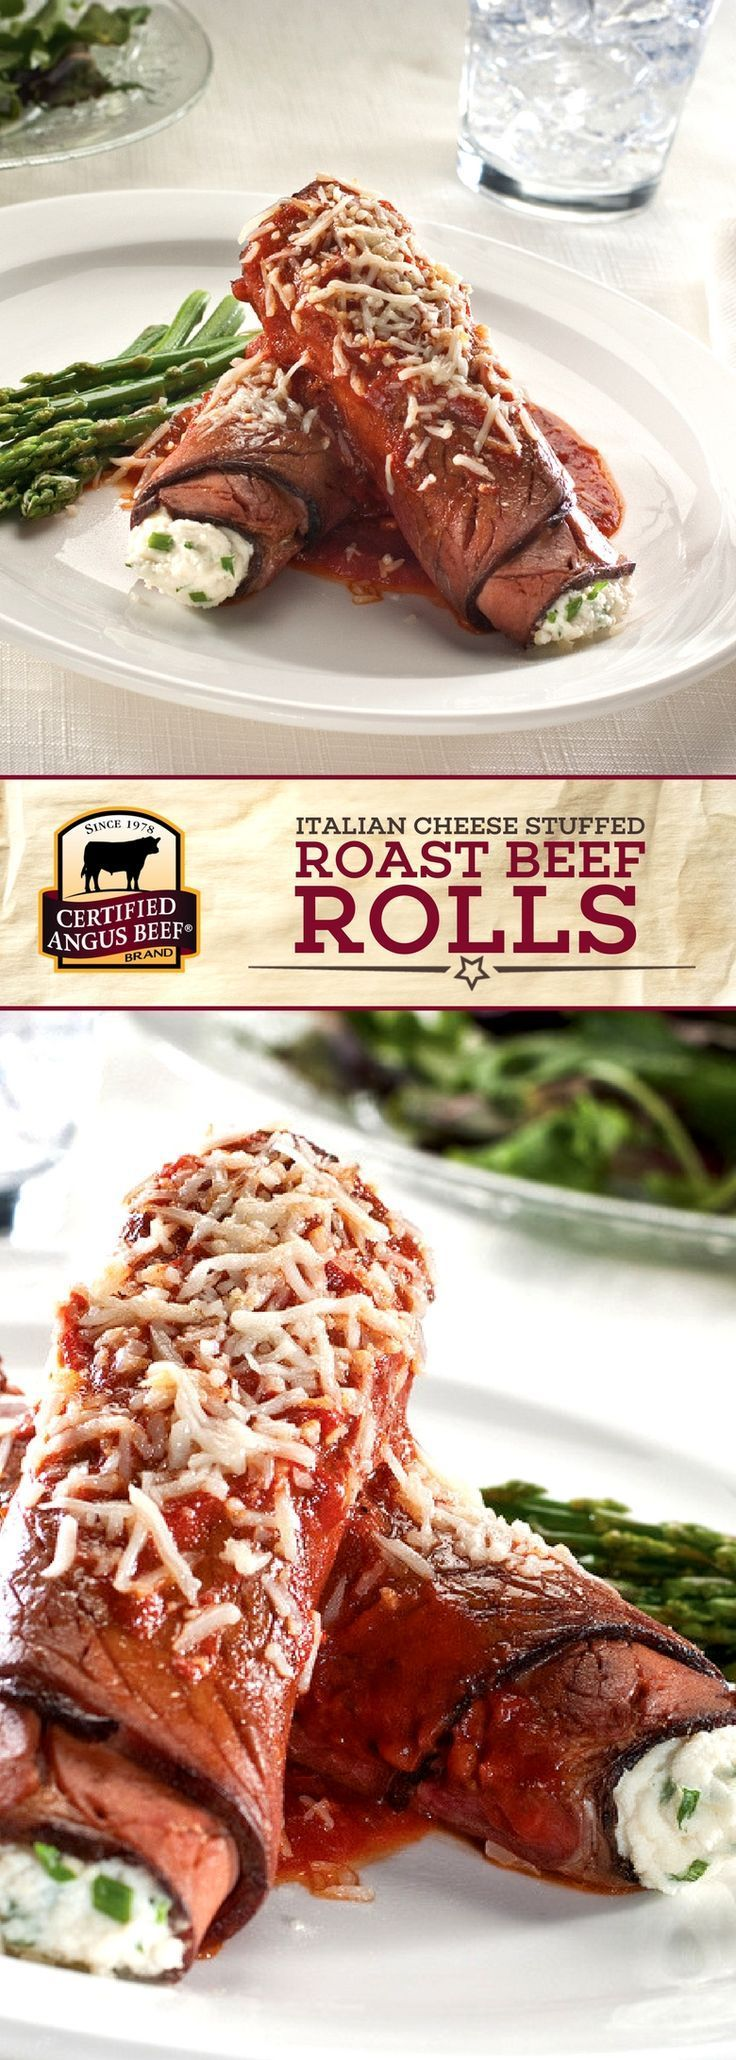 IMPRESS your party guests with Certified Angus Beef ®️️️️️️️️️️️️️️️️️️️️ brand Italian CHEESE Stuffed Roast Beef Rolls. This EASY appetizer, stuffed with THREE different kinds of cheese, is perfect for holiday parties and game day too. Roll up some Certified Angus Beef ®️️️️️ brand deli roast beef with Italian flavors to get the party started! #bestangusbeef #certifiedangusbeef #appetizerrecipes #roastbeef #easyrecipes #partyrecipe #gameday